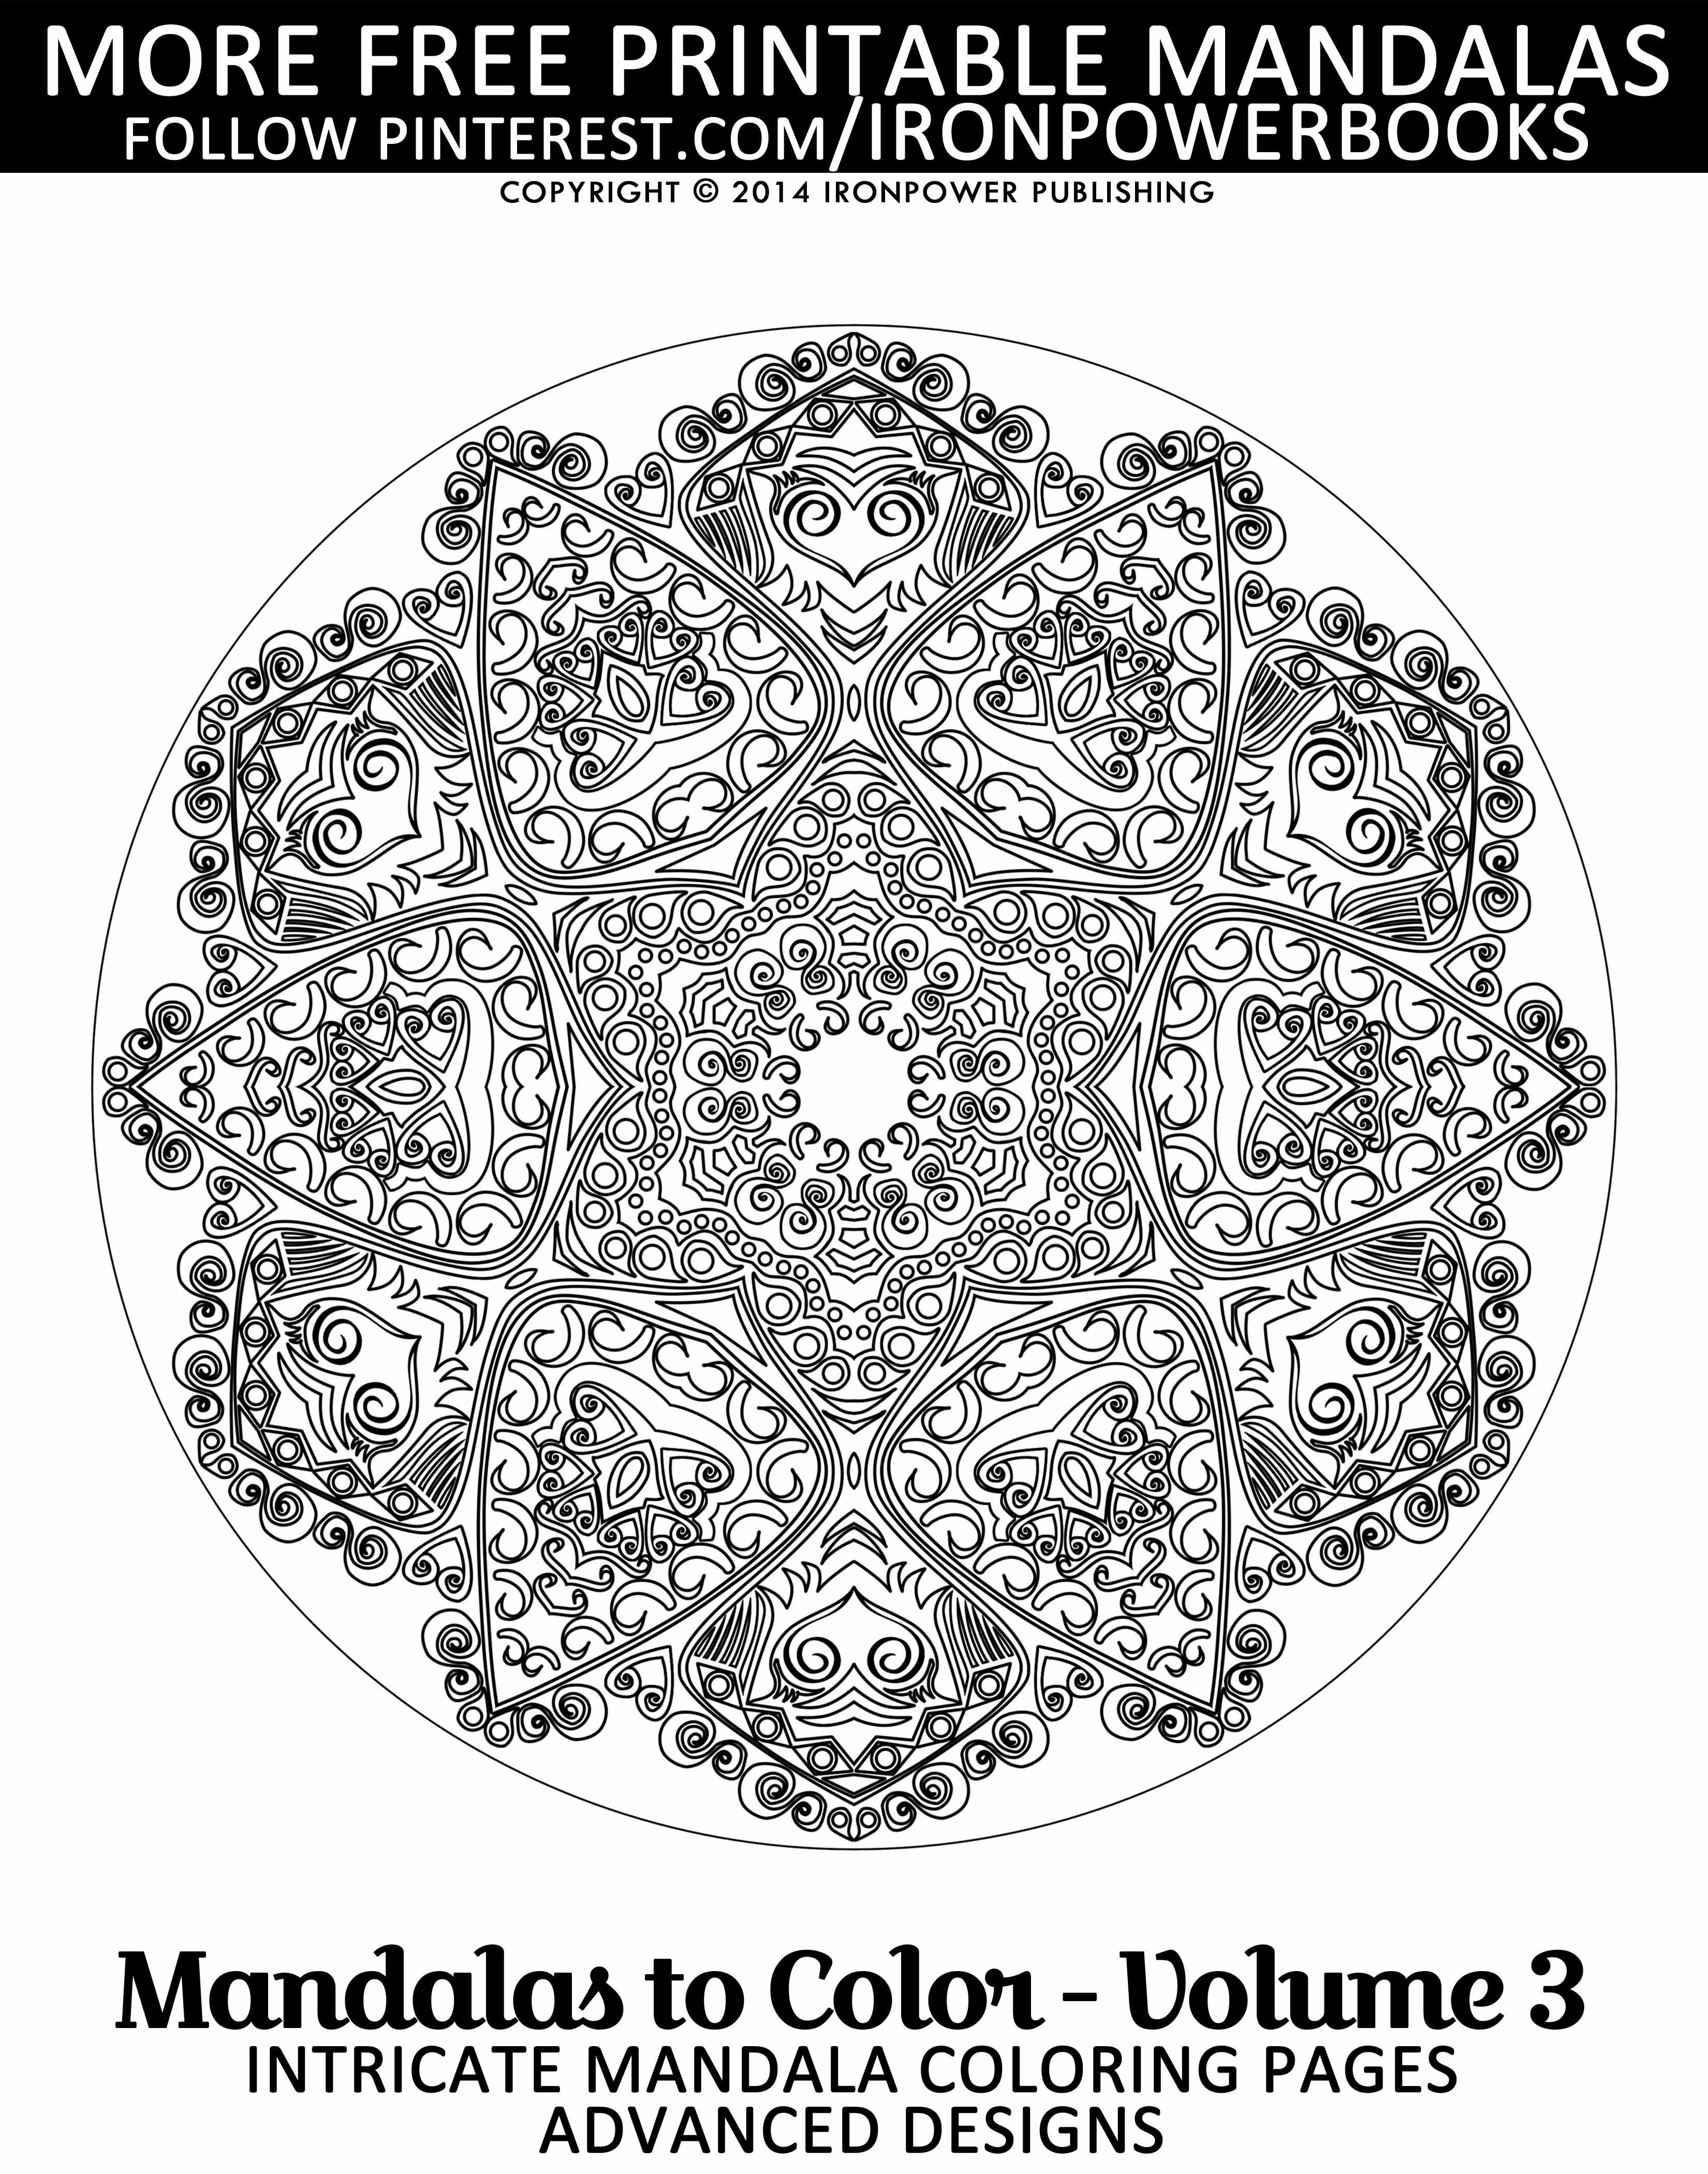 Free Intricate Mandala Coloring Pages For Adults Enjoy Coloring For Hours Please Use Freely For Pe Mandala Coloring Pages Mandala Coloring Coloring Pages